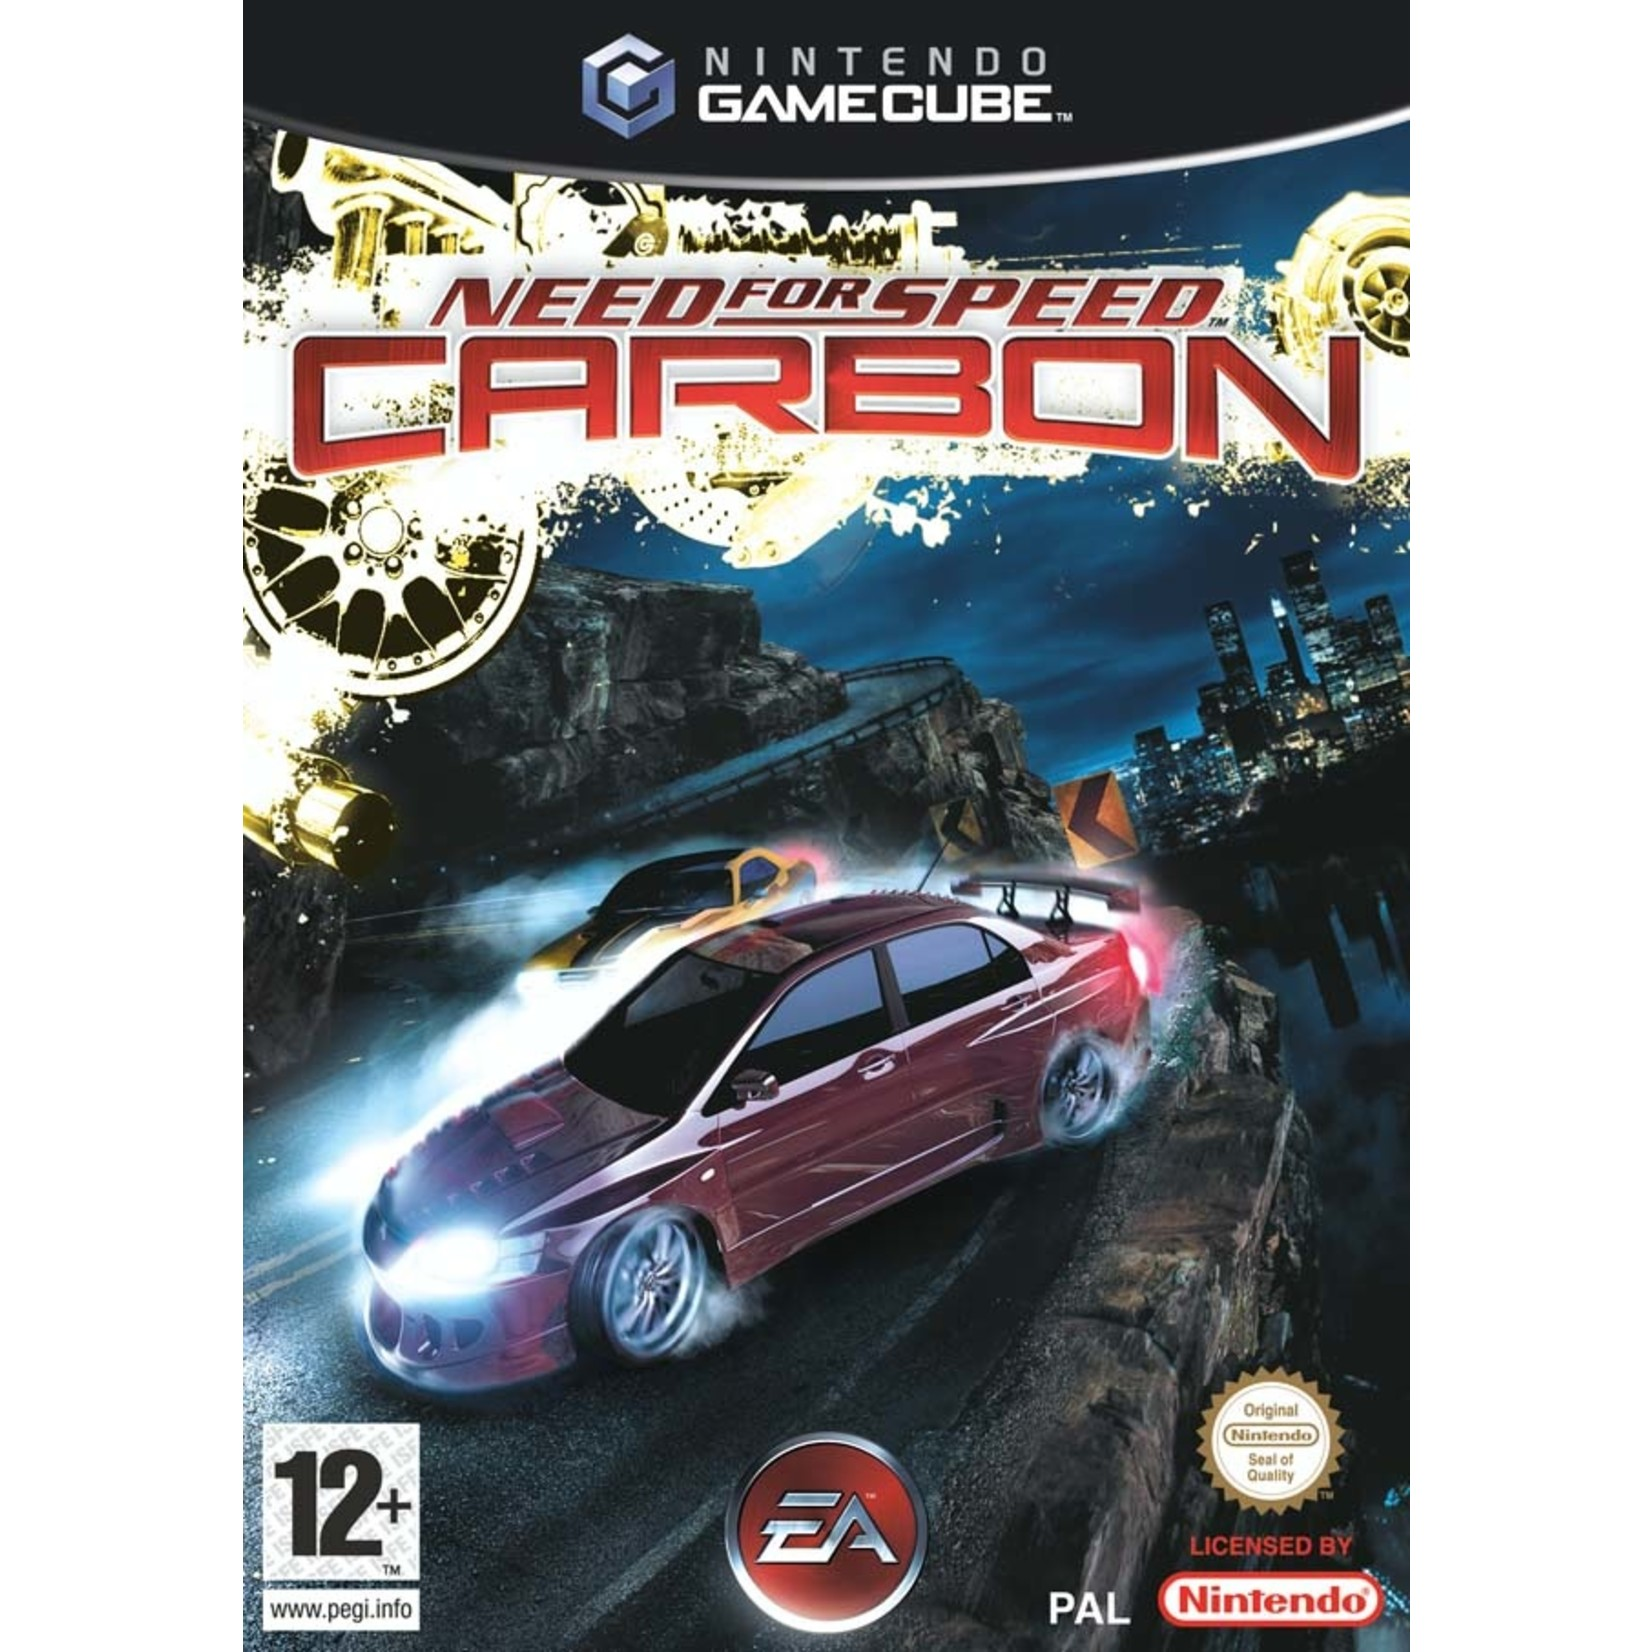 GCU-NEED FOR SPEED CARBON